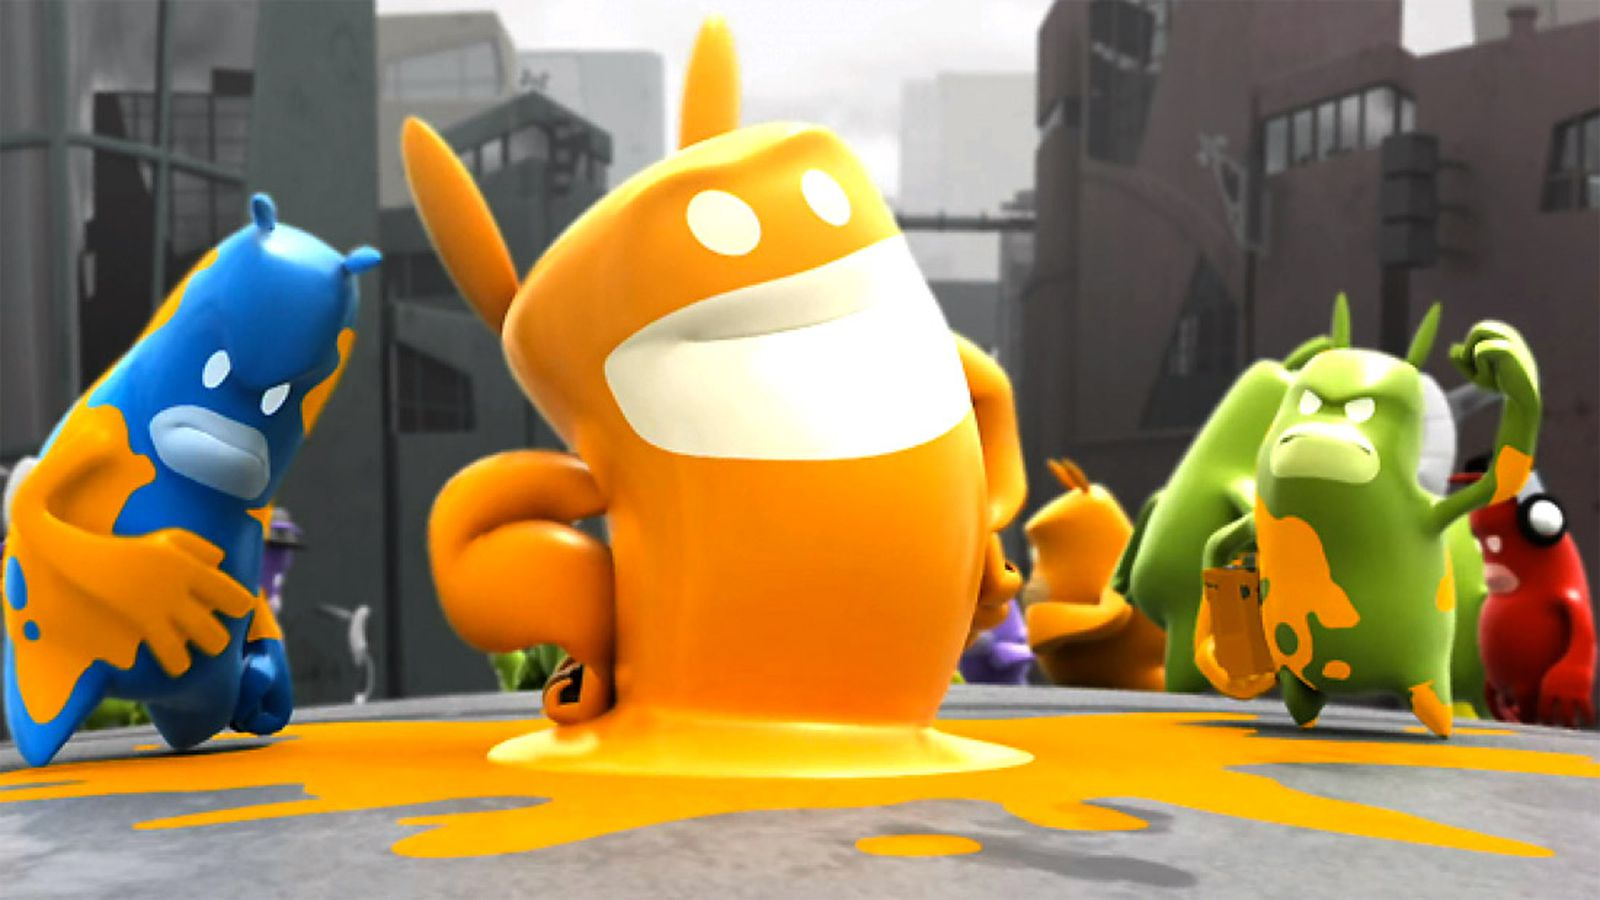 THQs de Blob rights picked up by Nordic Games  Polygon